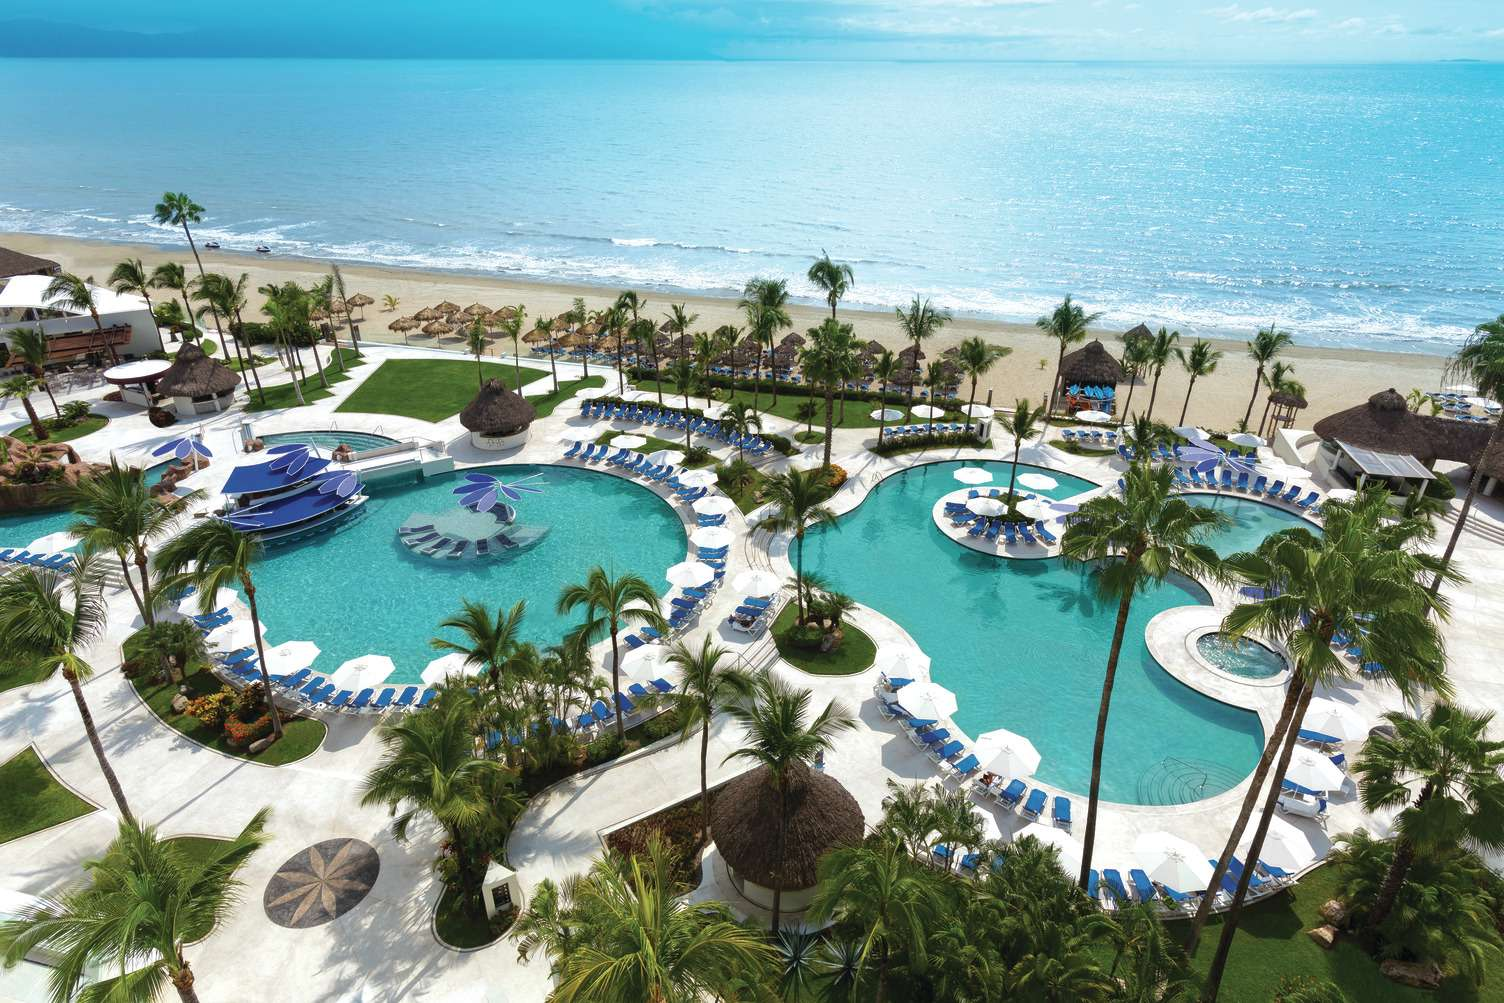 Kids Stay and Play Free at Hard Rock Hotels